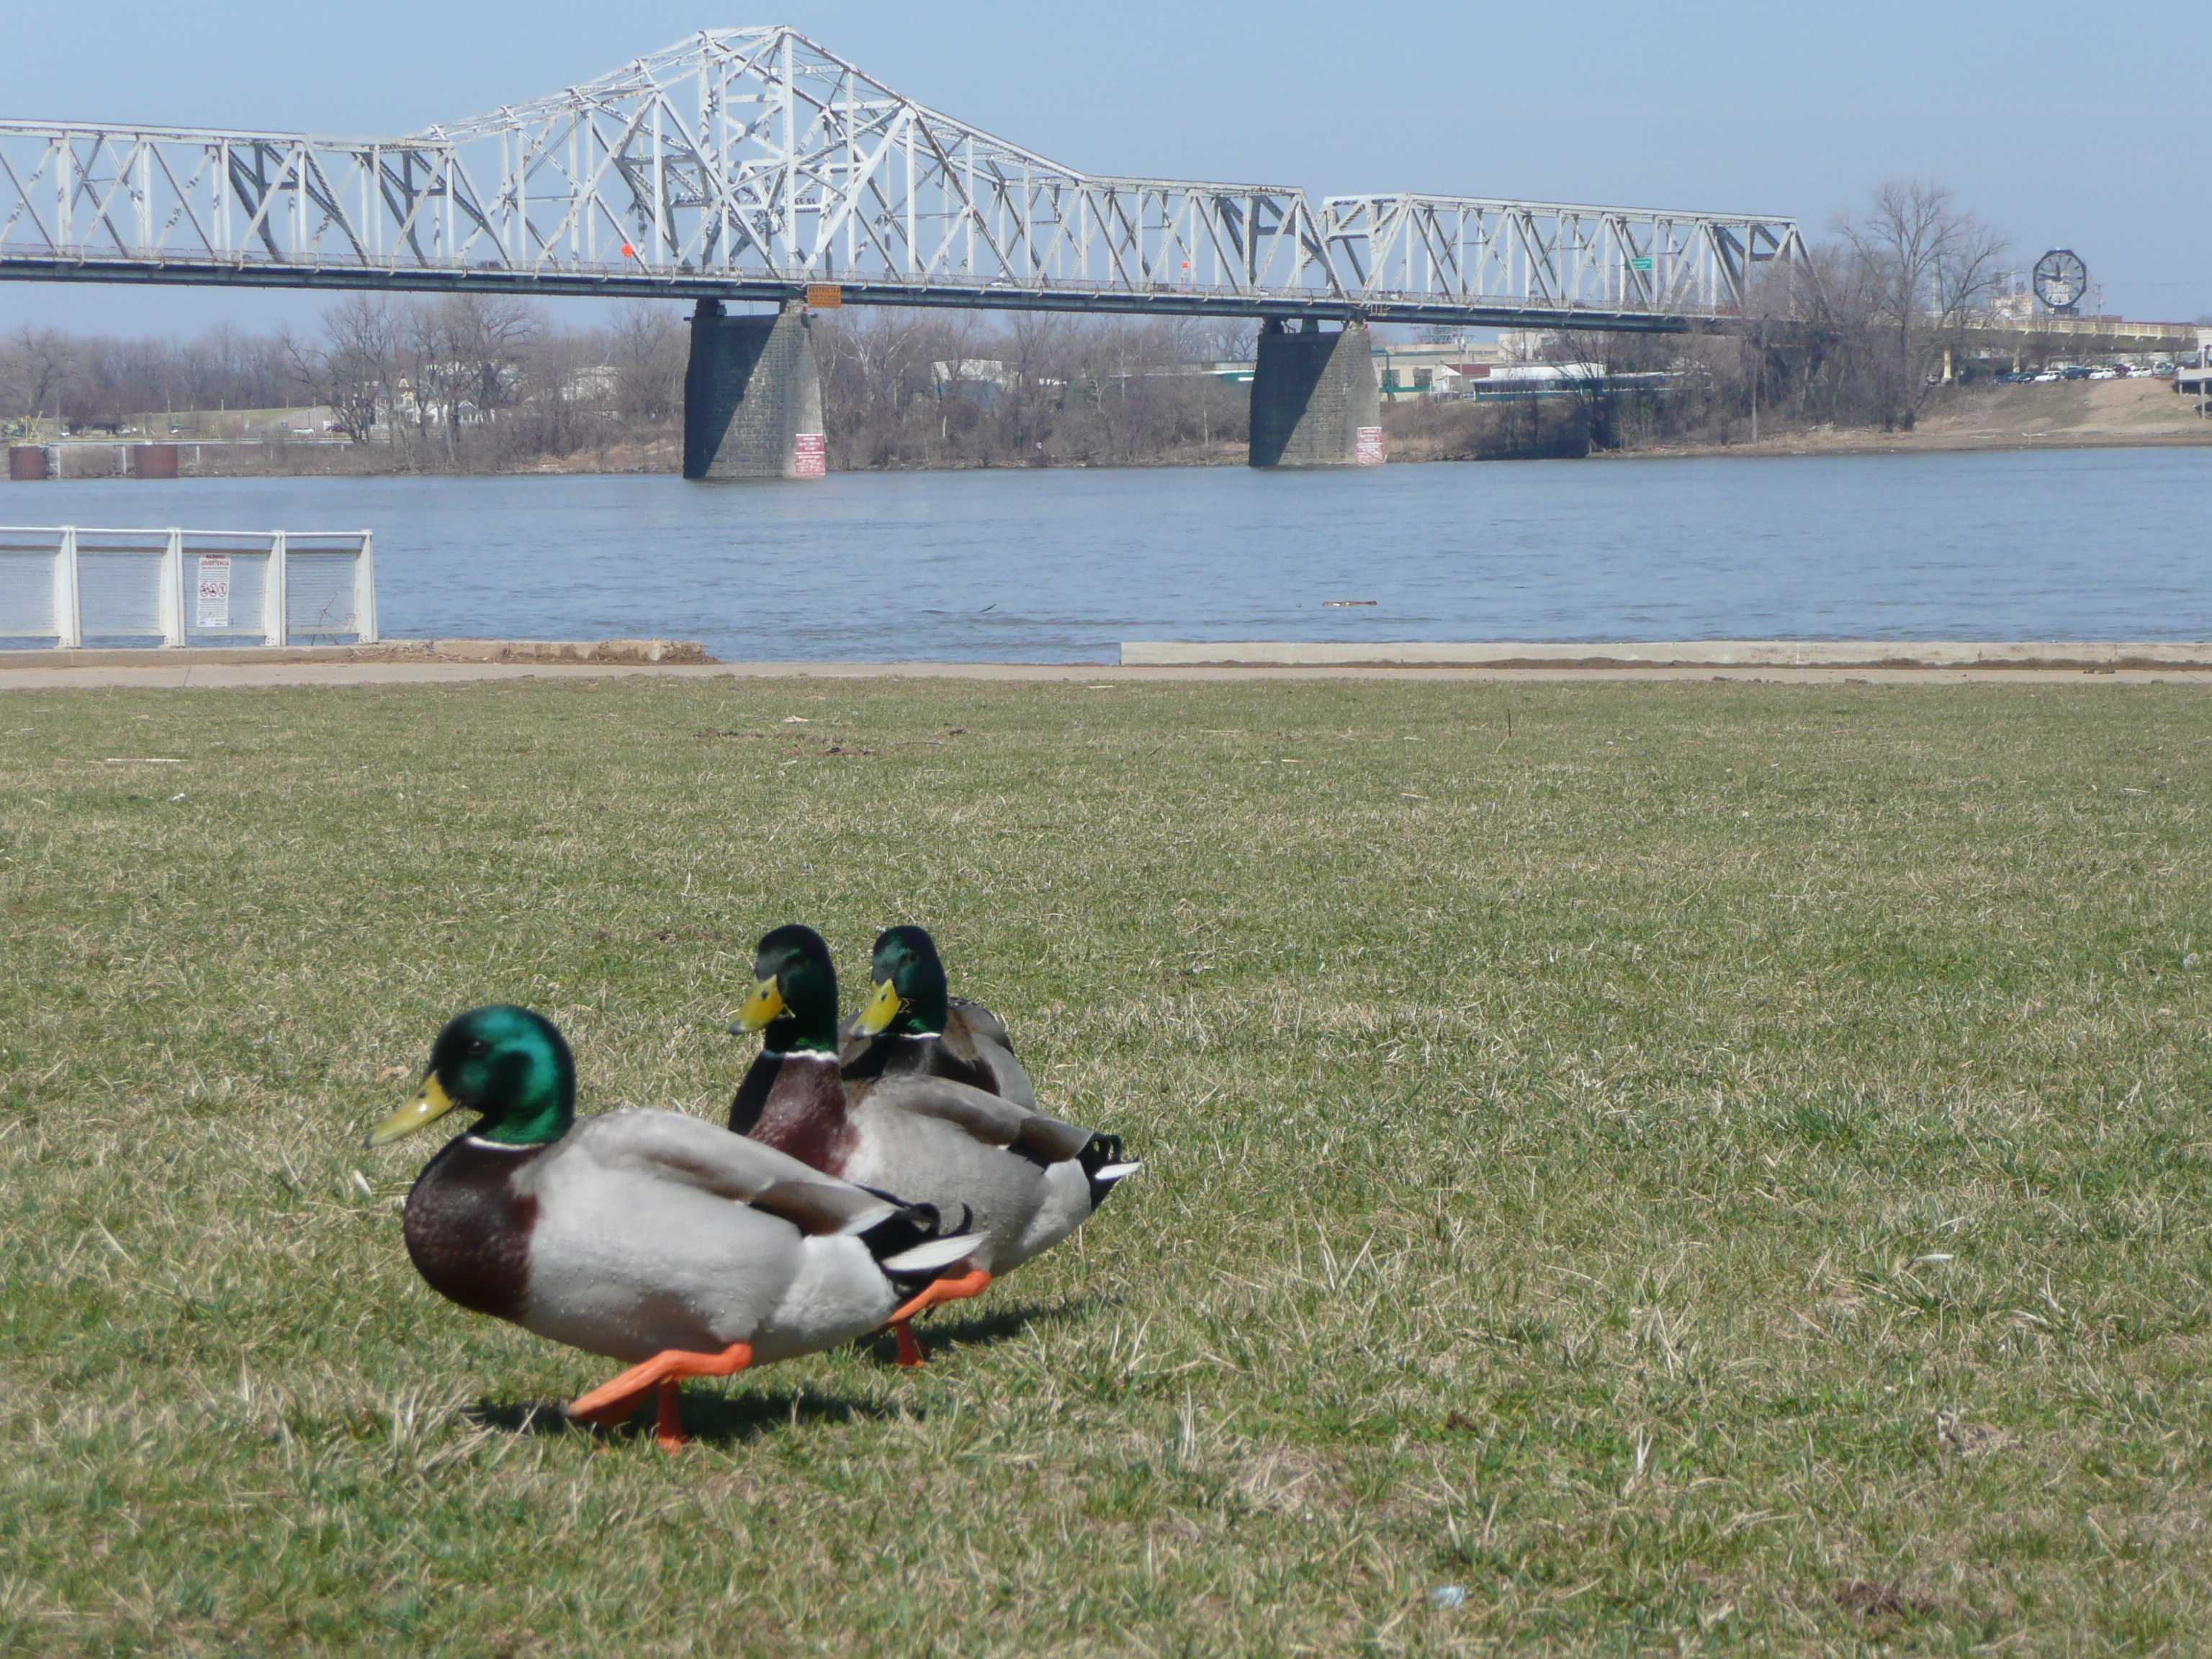 Waterfront park, located between the John F. Kennedy (Interstate 65) and George Rogers Clark Memorial (Second Street) bridges.